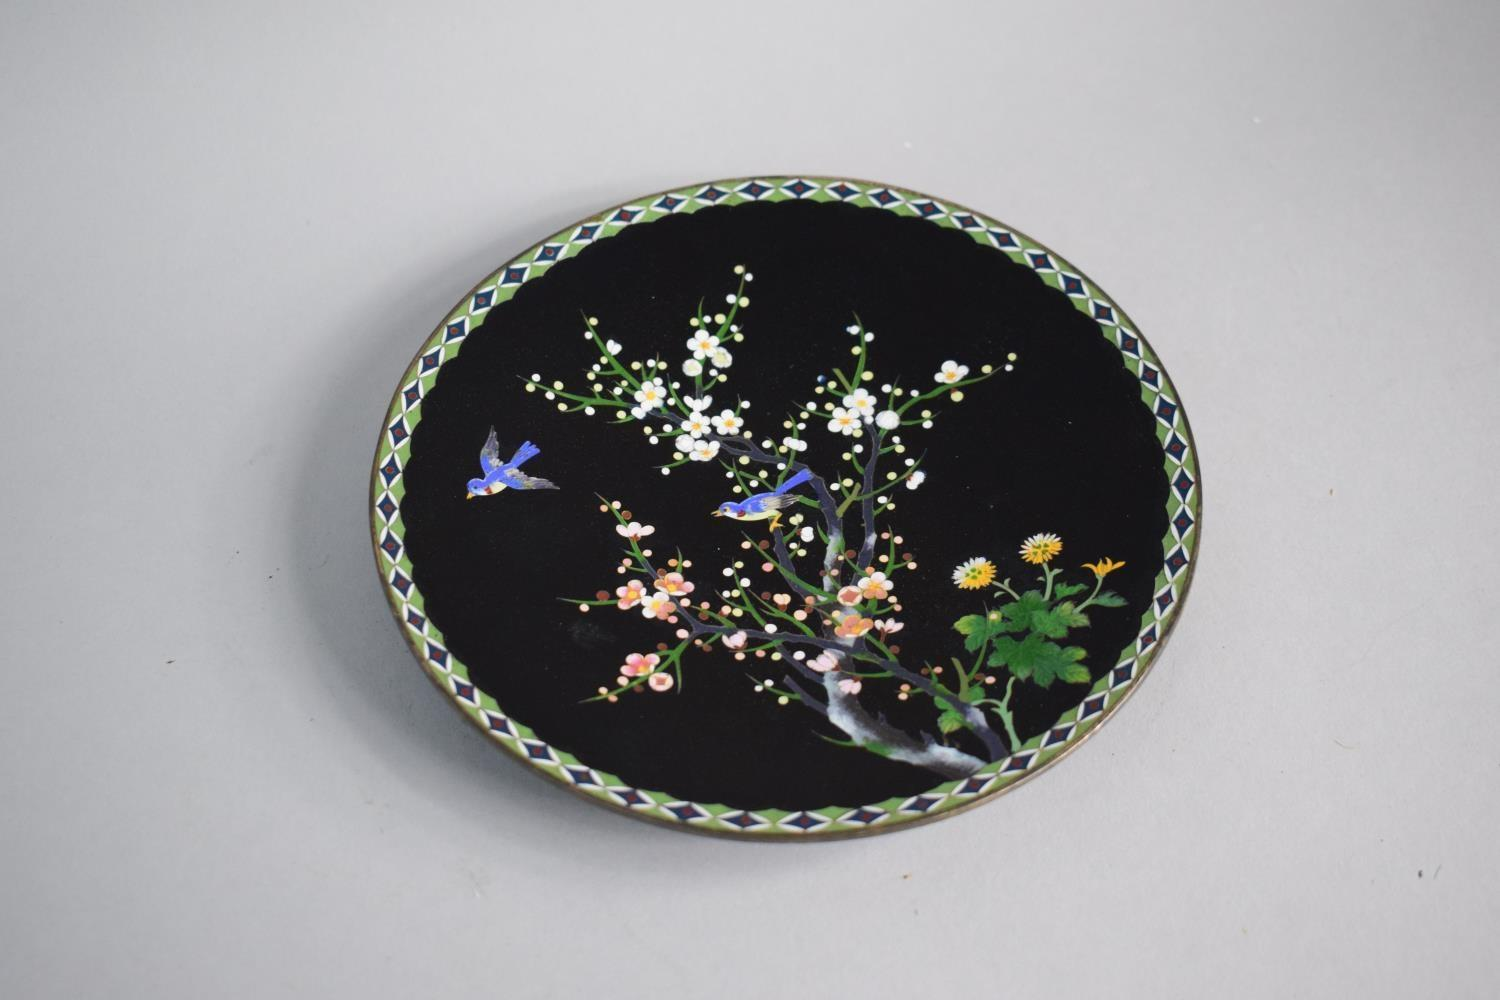 Lot 120 - An Oriental Cloisonne Dish decorated with Blue Birds in Blossom Tree, 18.5cms Diameter